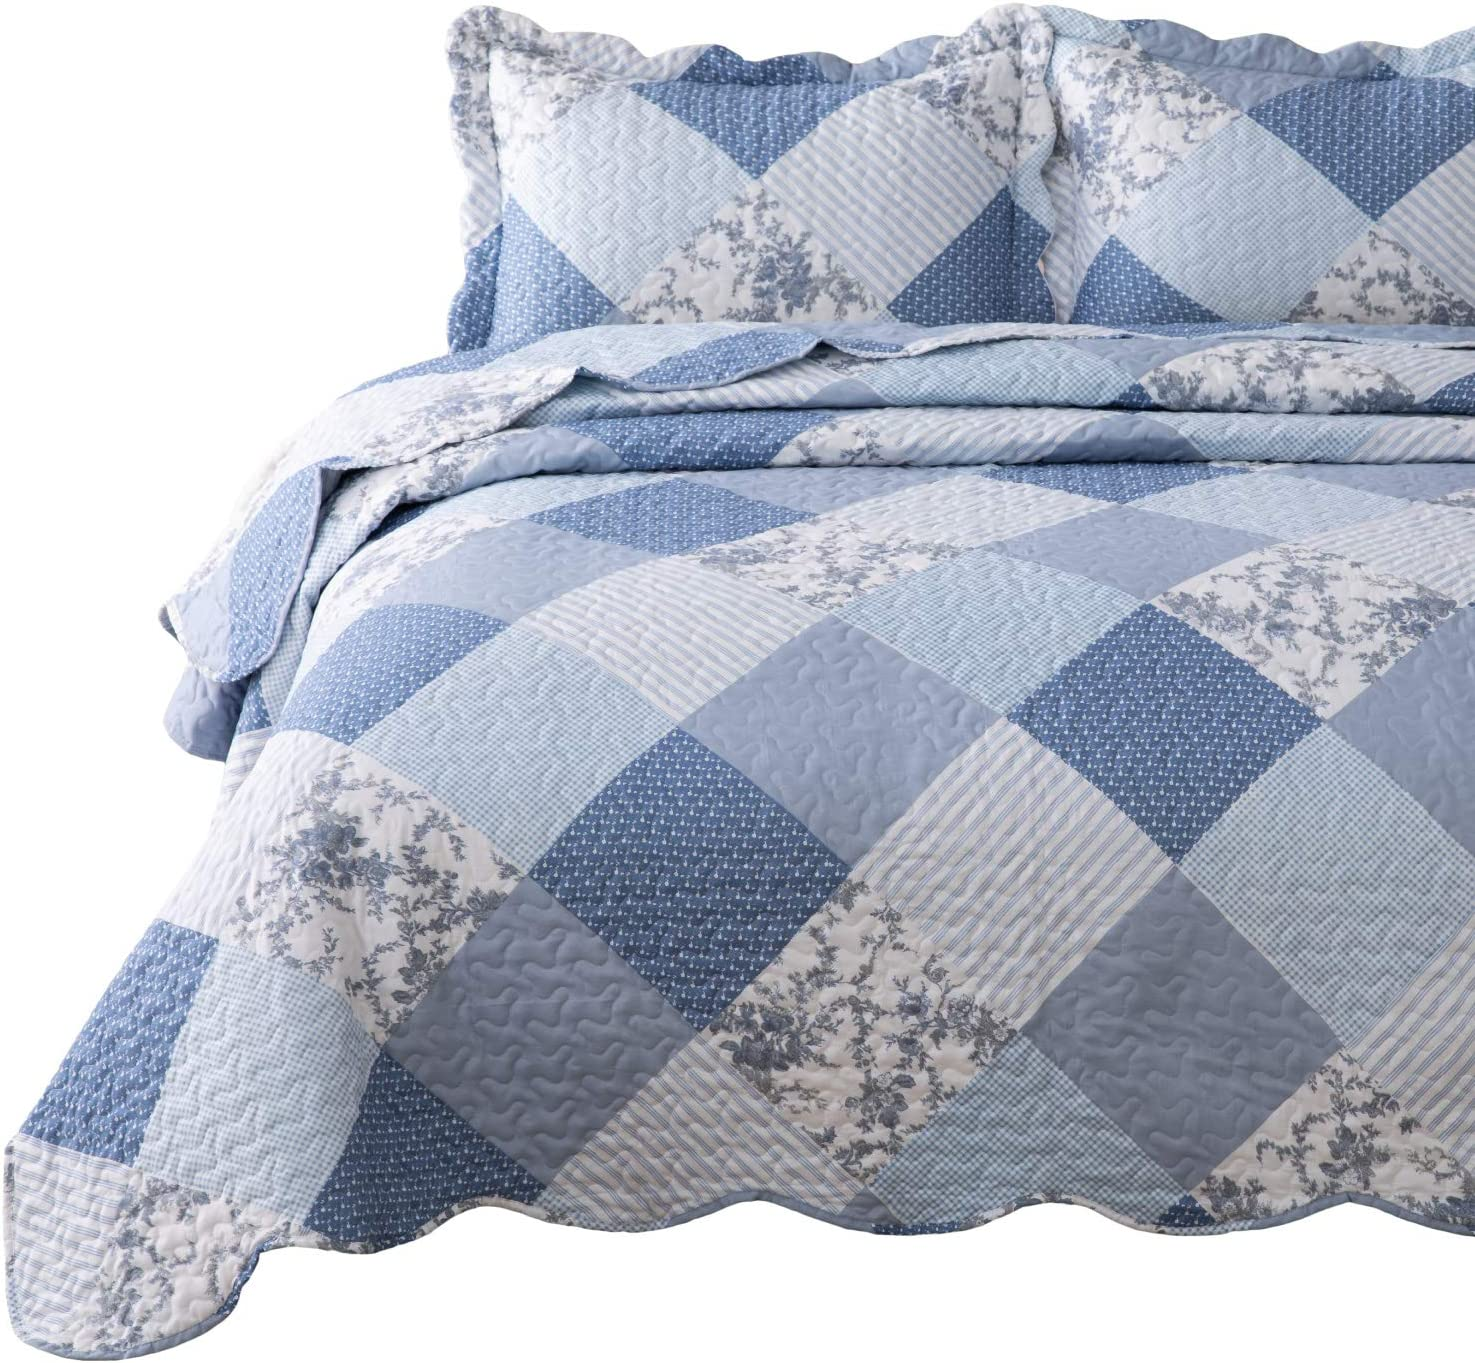 Bedsure 3-Piece Printed Quilt Set Queen/Full Size (90x96 inches), Blue Floral Patchwork Pattern, Lightweight Bedspread Coverlet Design for All Season, 1 Quilt and 2 Pillow Shams